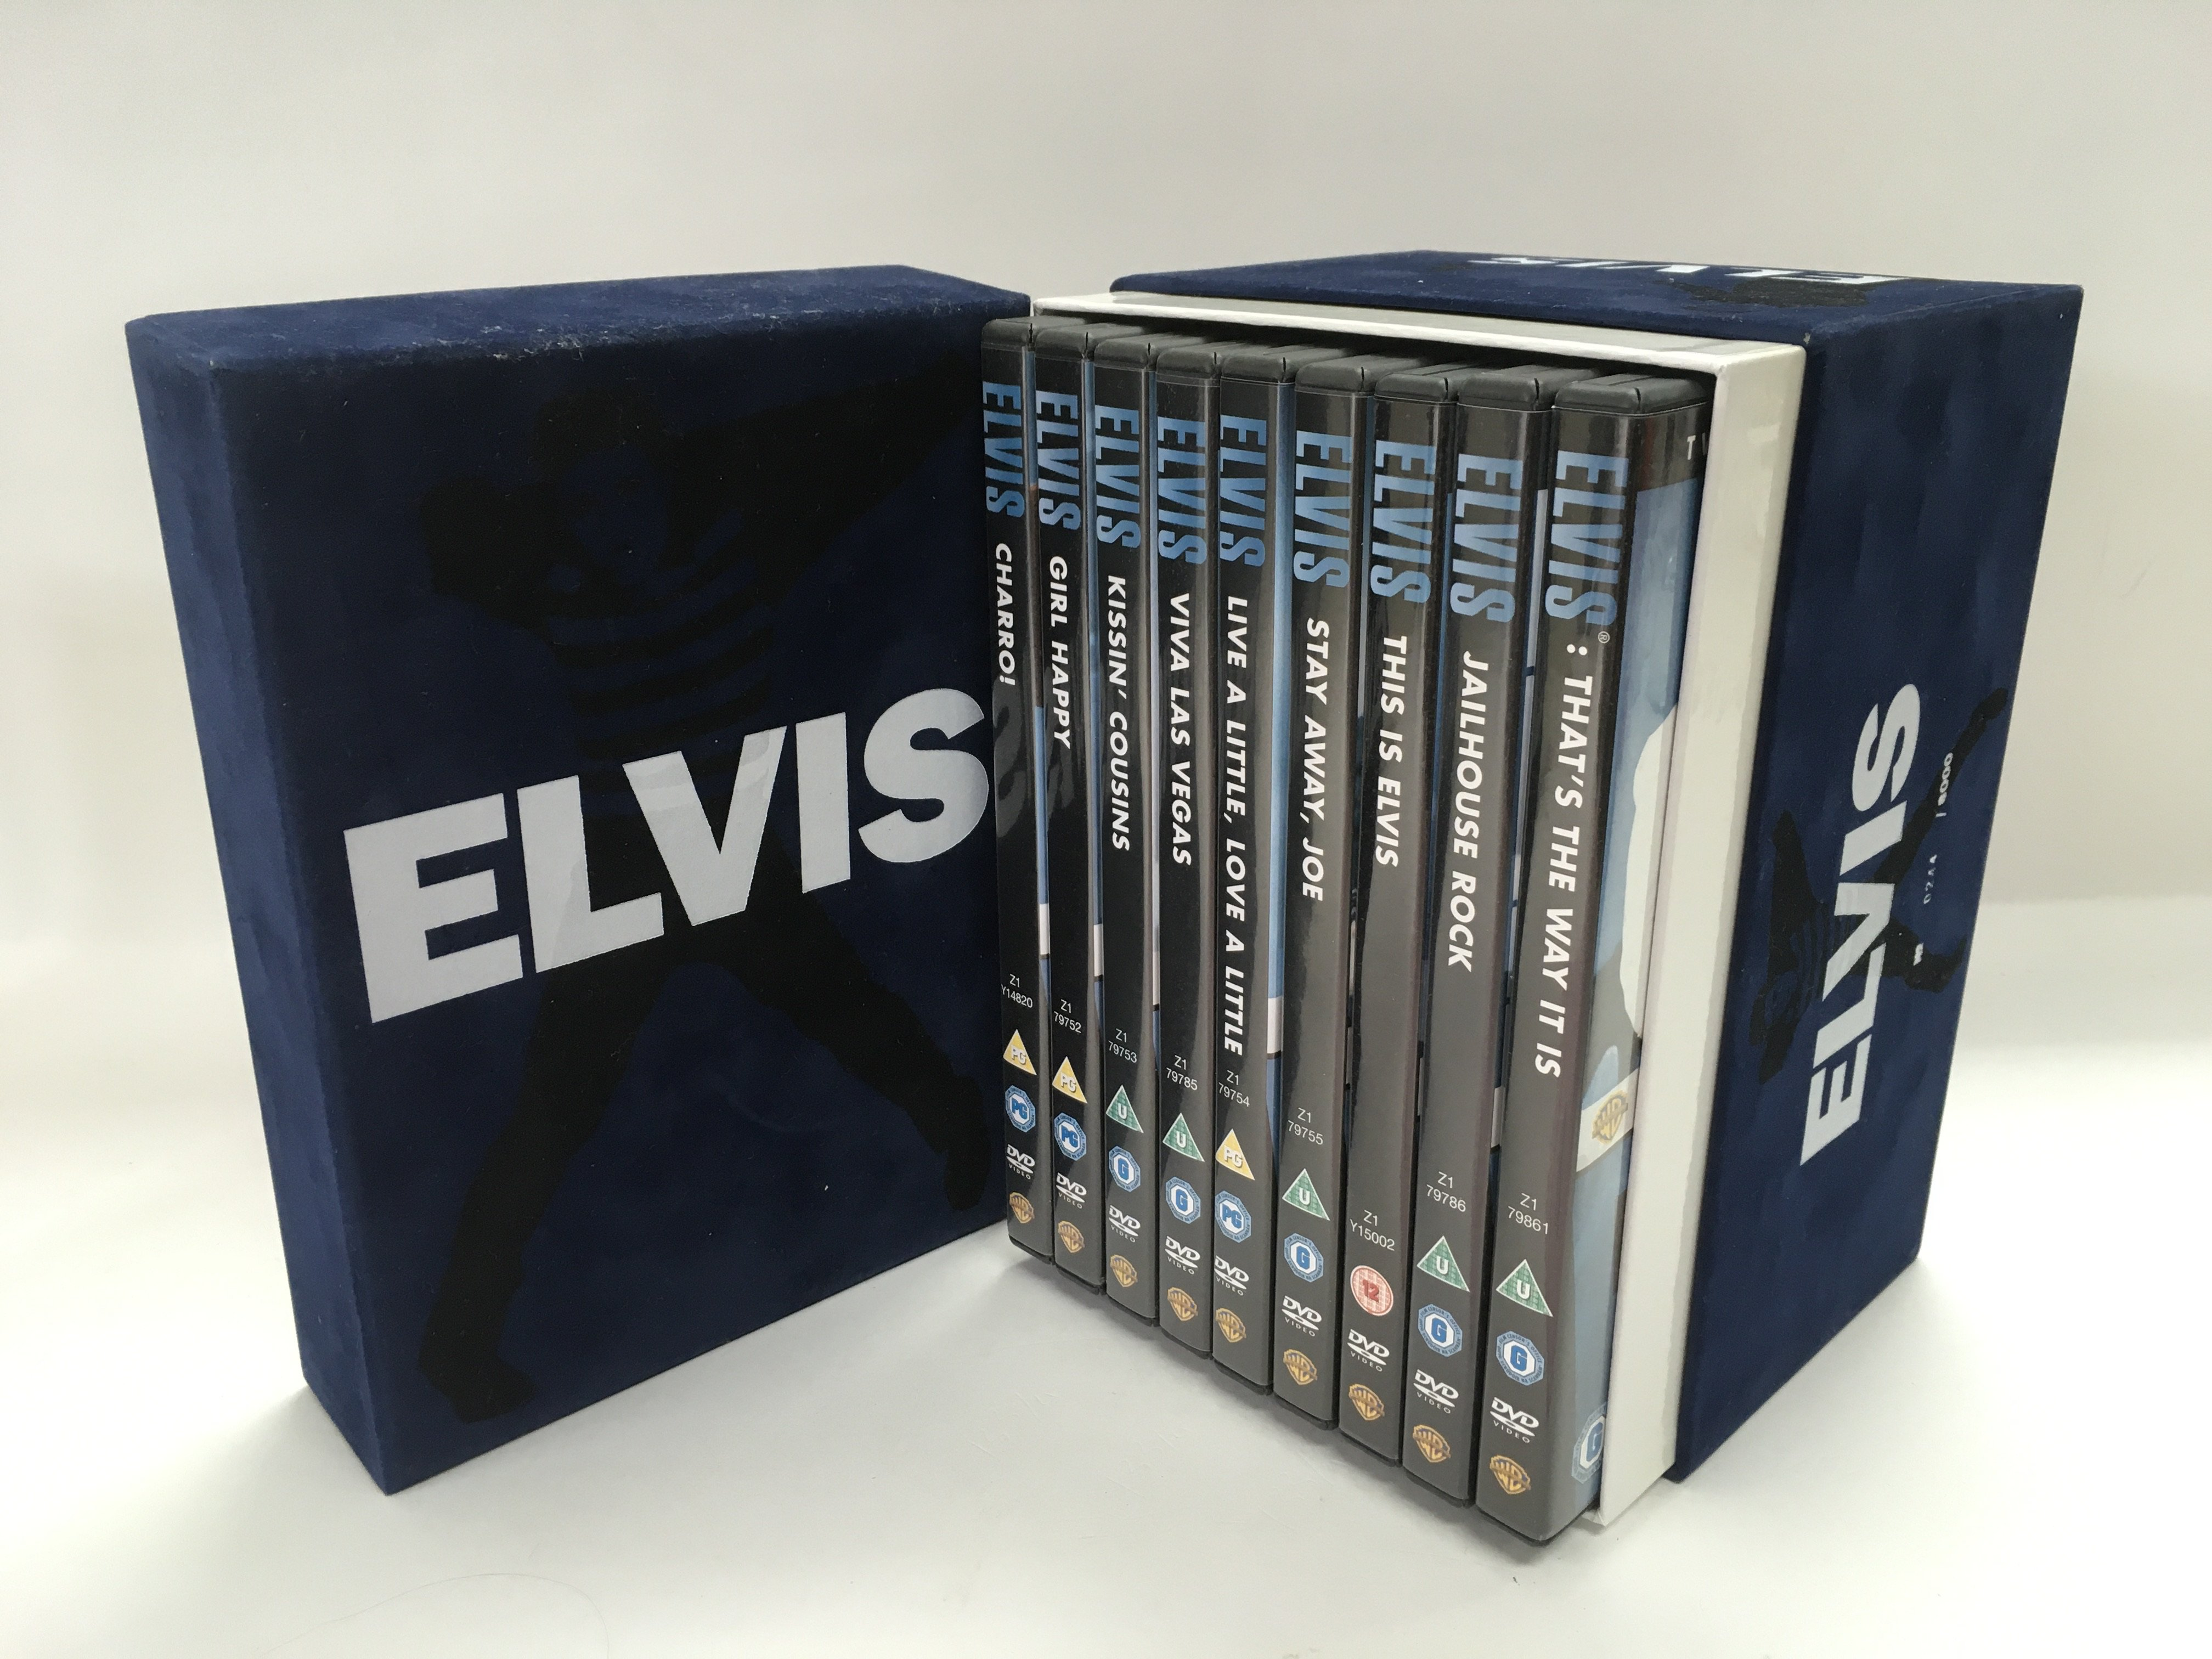 An Elvis Presley limited edition 11 disc DVD box s - Image 2 of 2